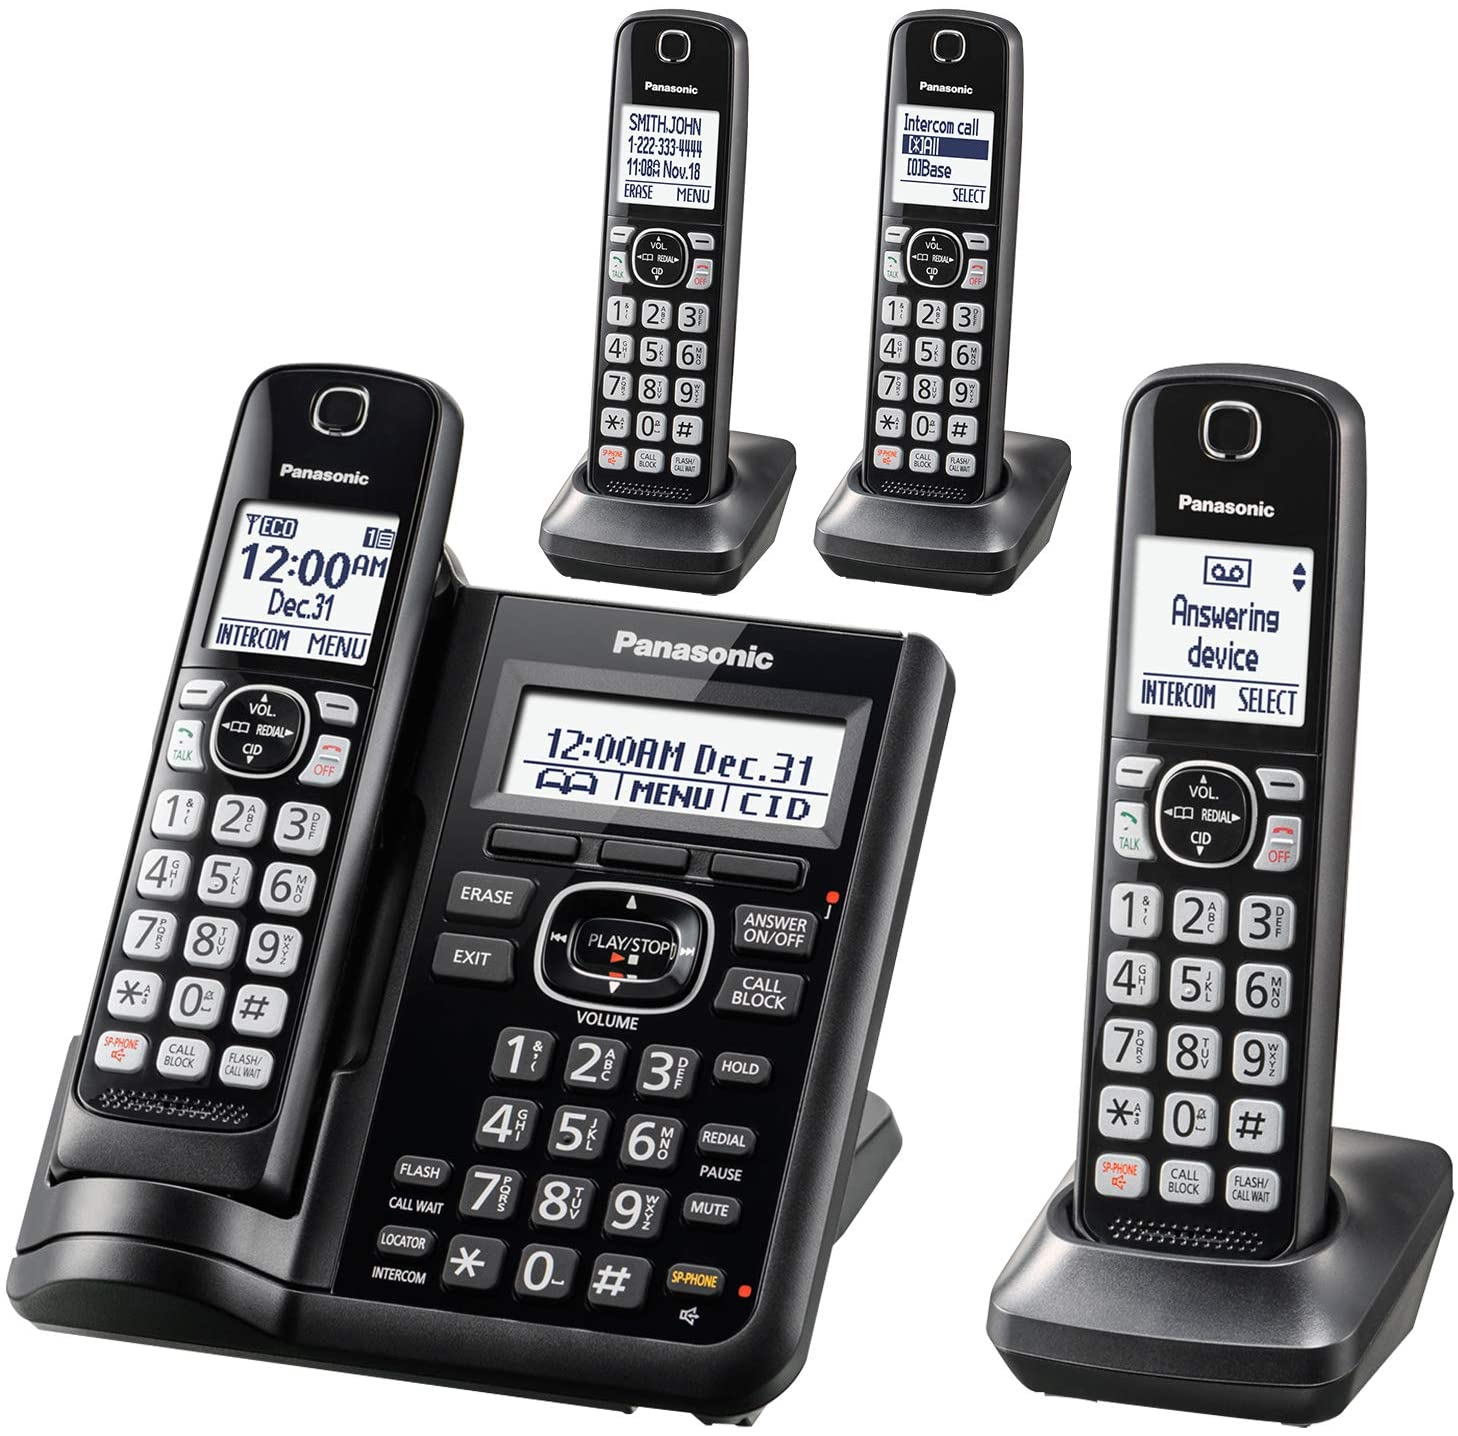 Panasonic Cordless Phone System with Answering Machine, One-Touch Call Block, Enhanced Noise Reduction, Talking Caller ID and Intercom Voice Paging - 4 Handsets - KX-TGF544B (Black)